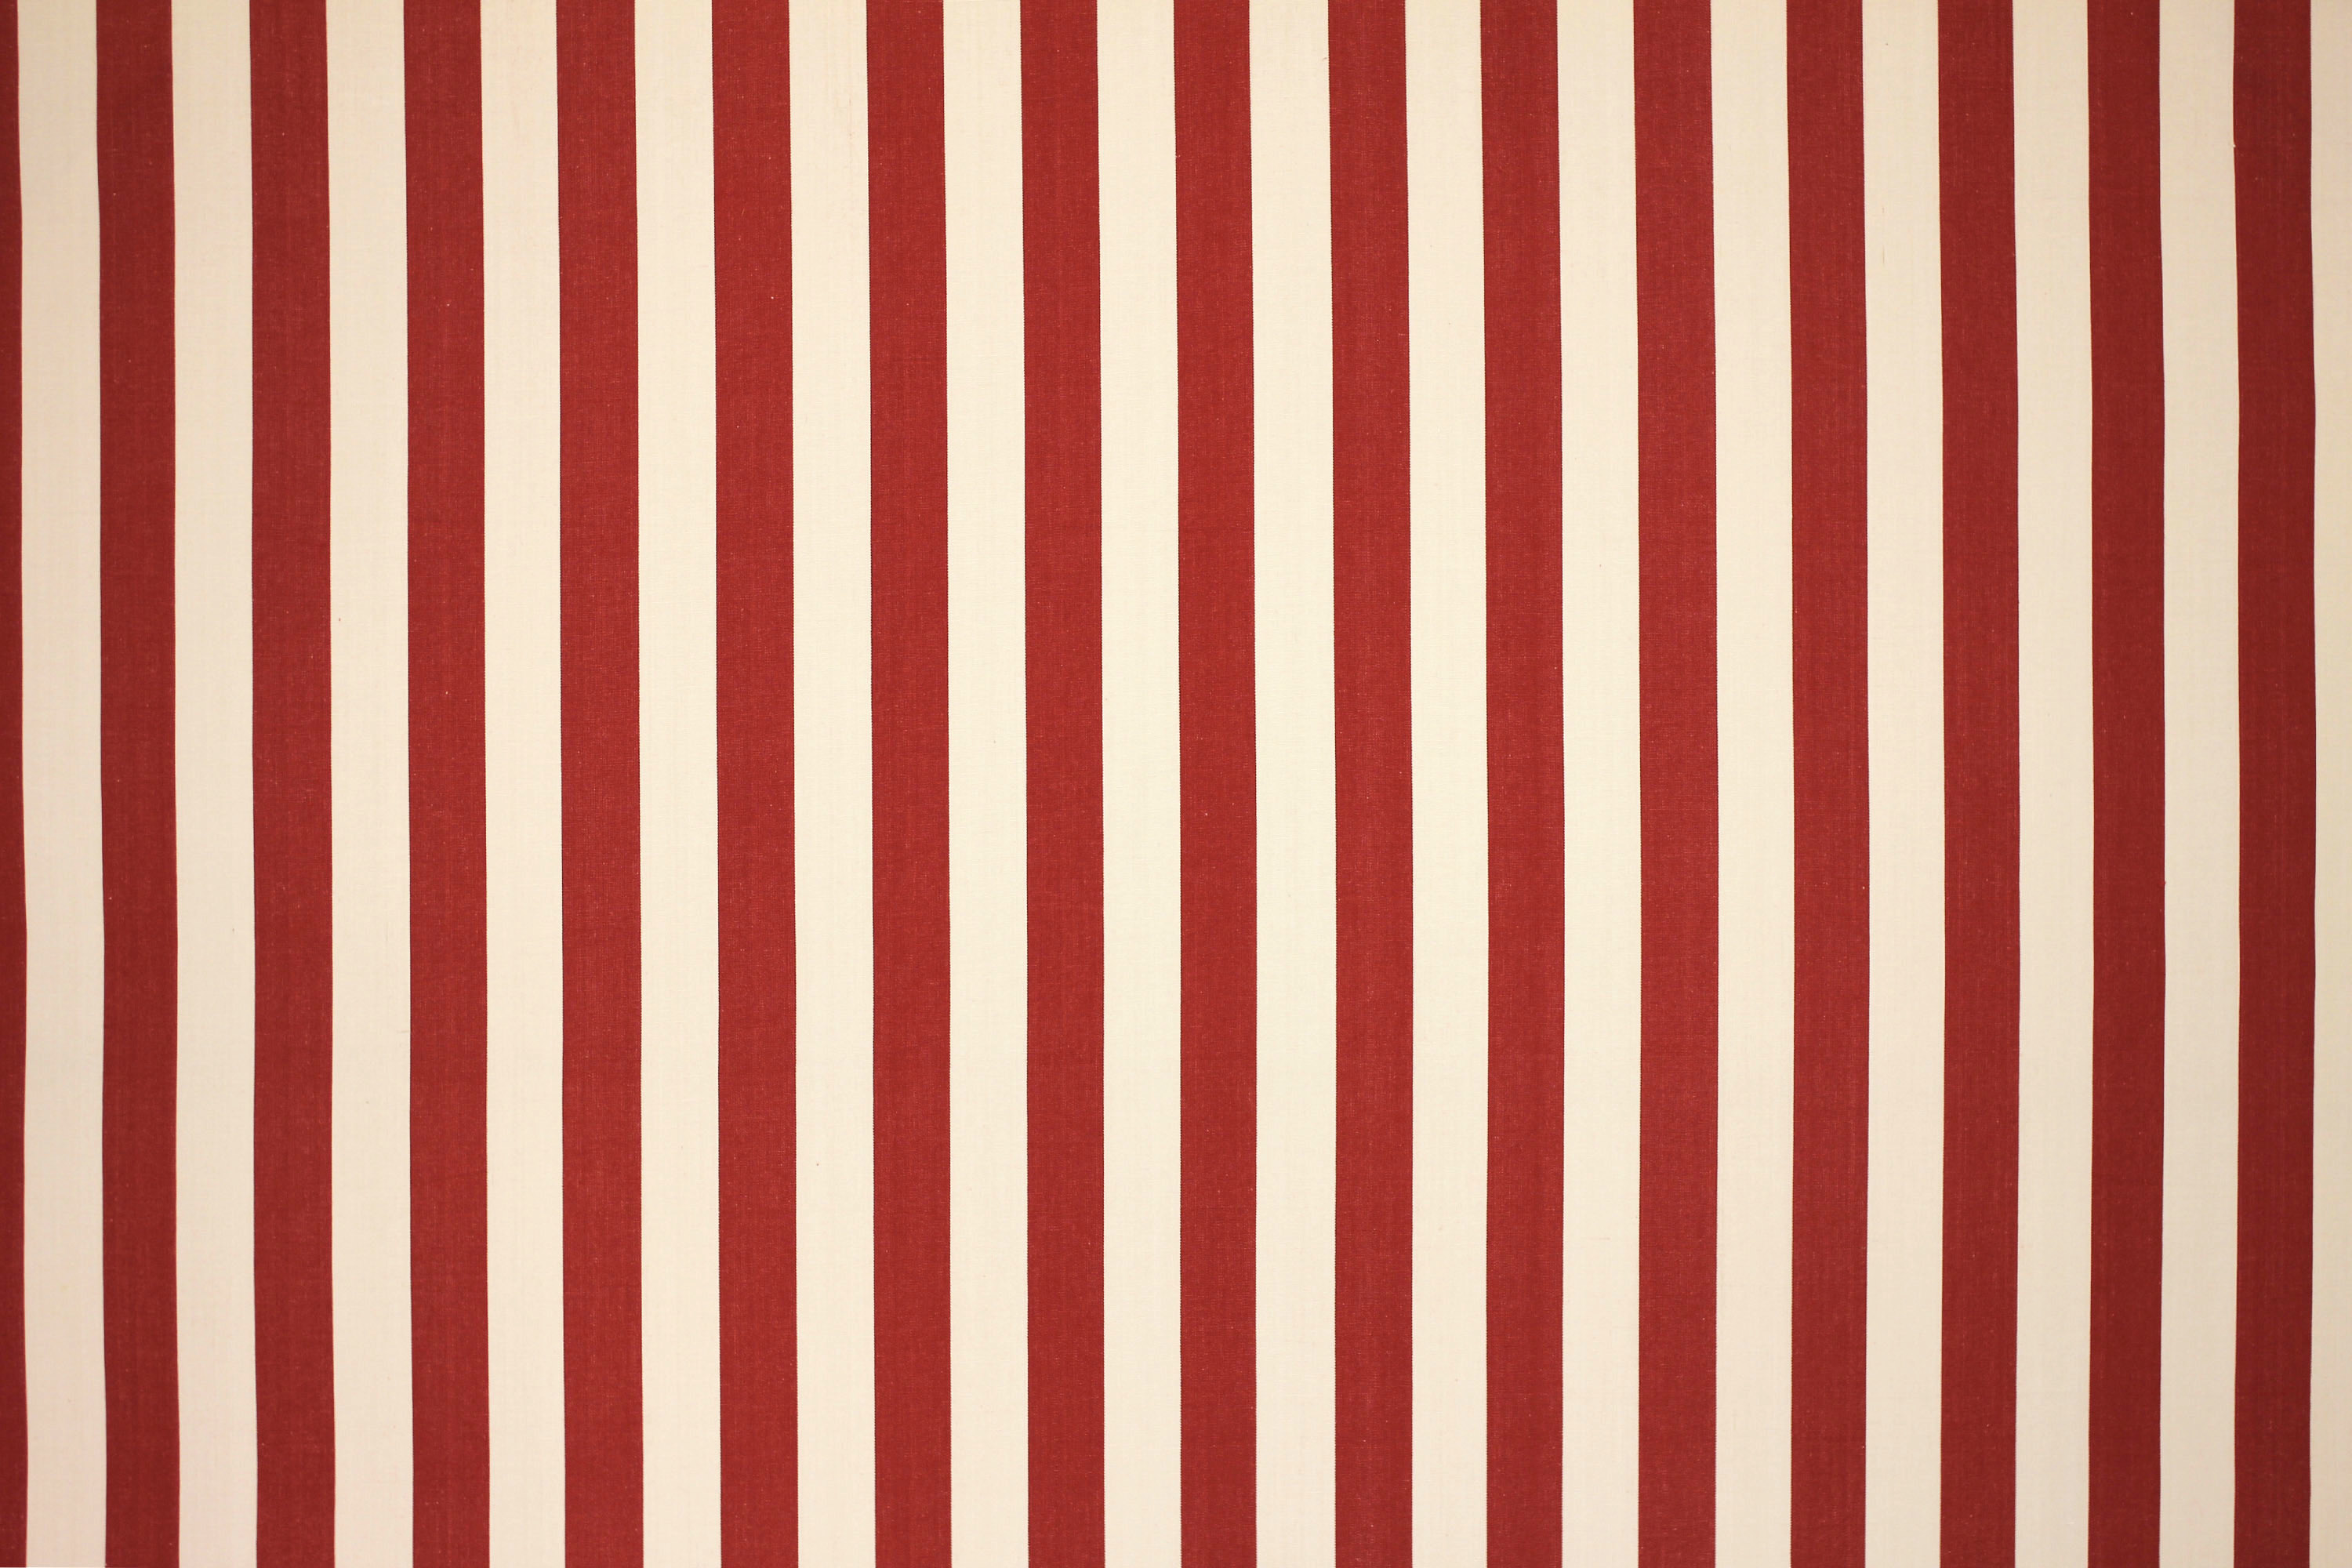 Red And White Striped Fabrics Striped Curtain Fabrics Upholstery Fabrics Red White Stripes